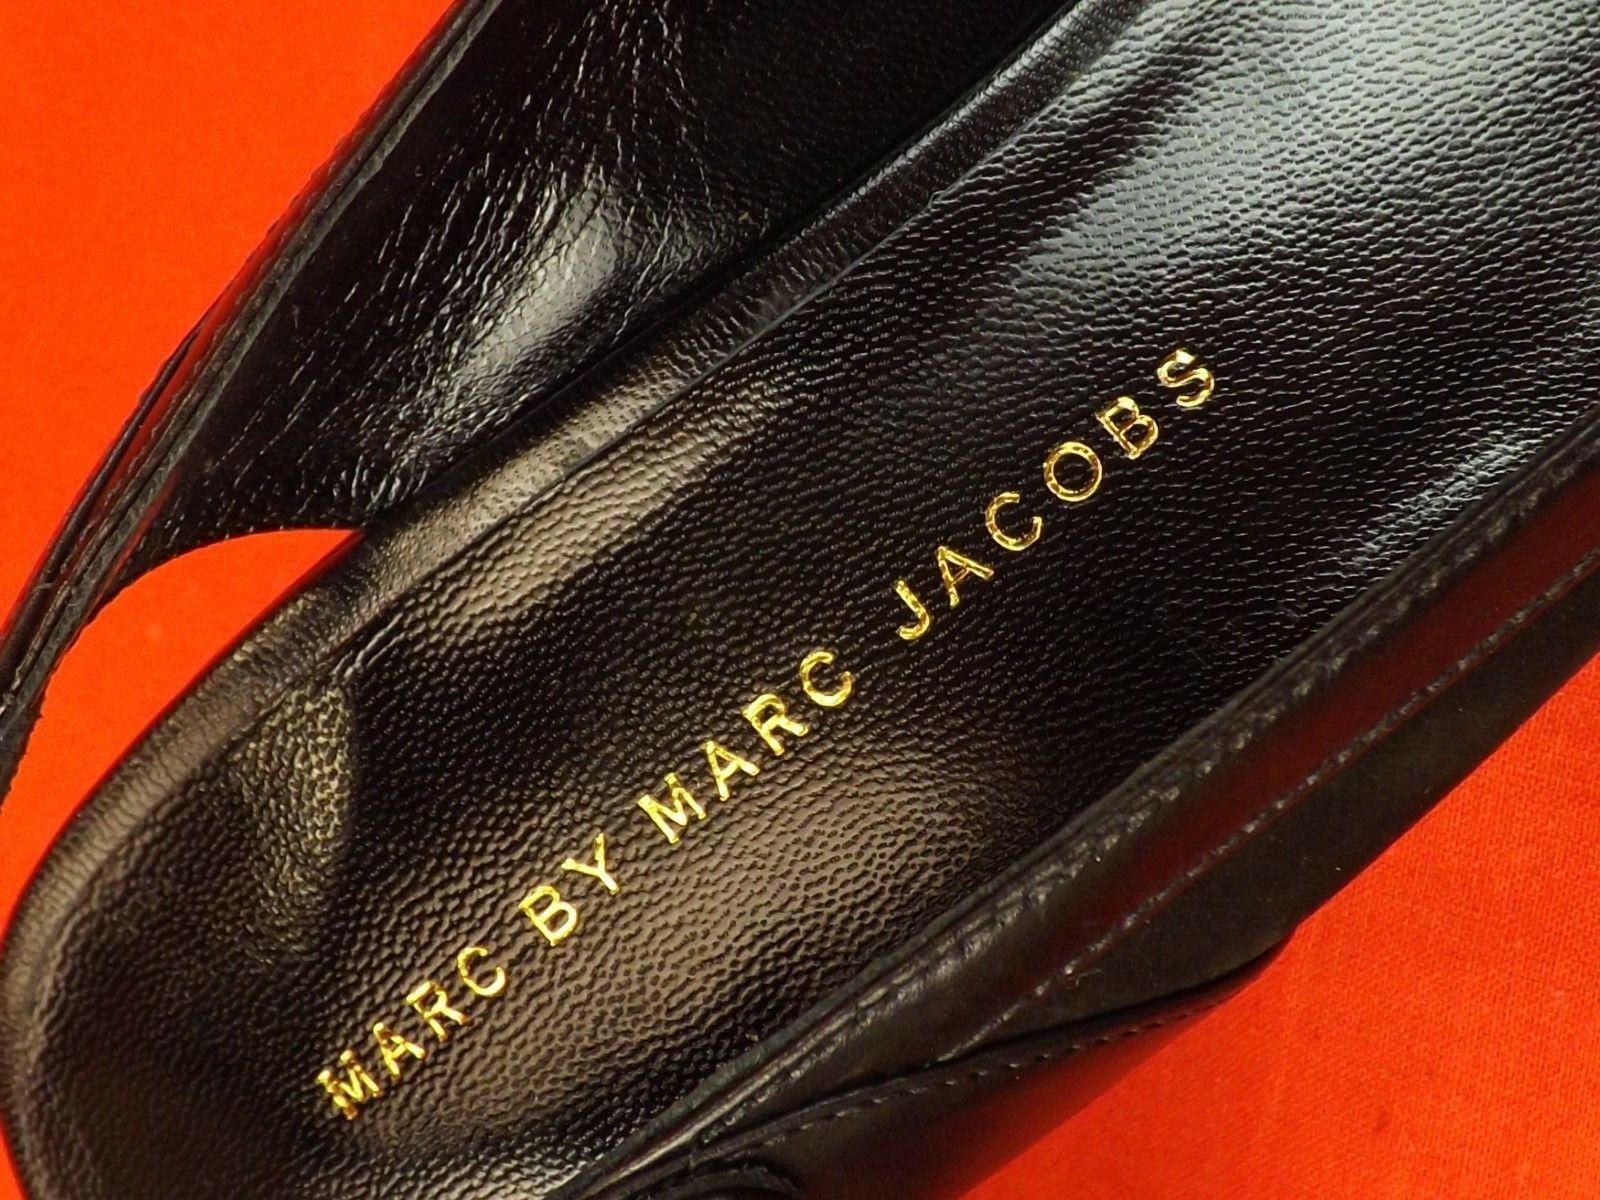 NIB MARC BY MARC JACOBS BLACK BLACK JACOBS SUEDE LEATHER PLATFORM WEDGE SLINGBACK SANDALS 37 f7db24